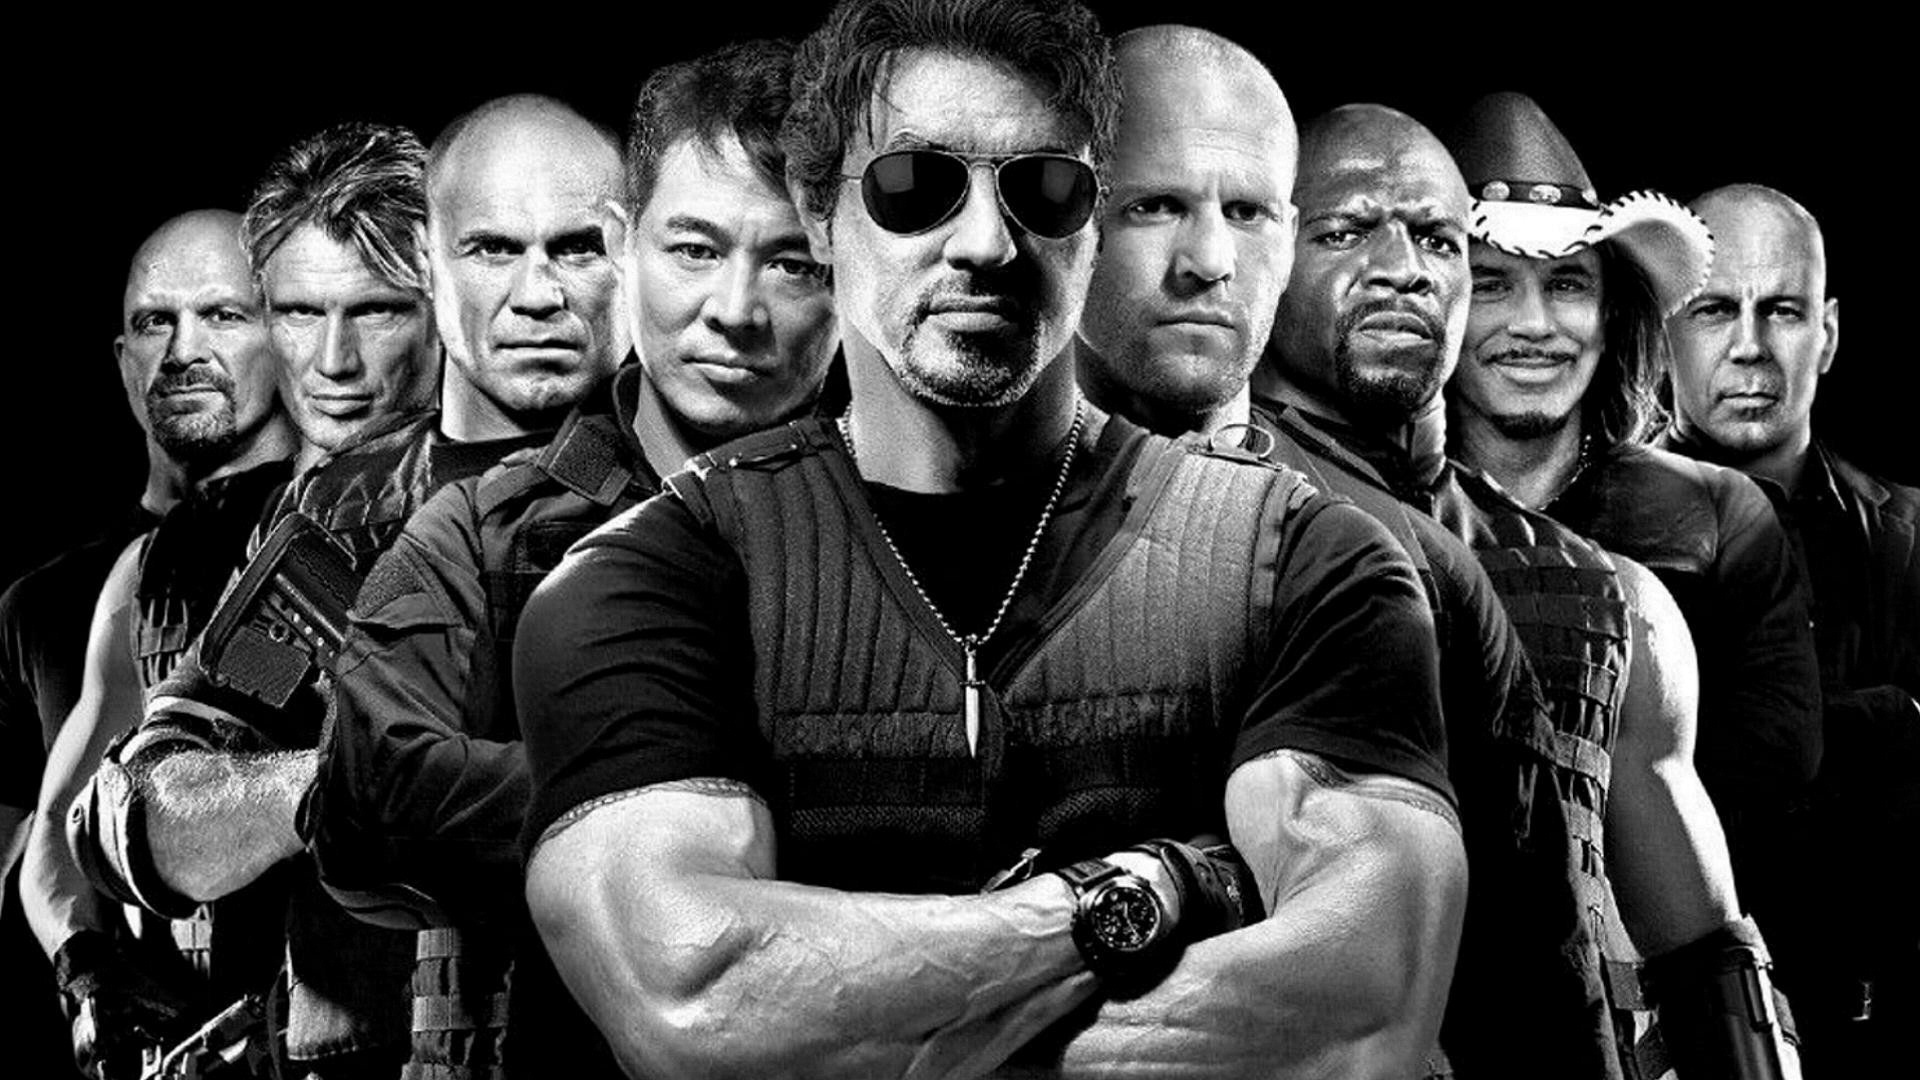 High Resolution Wallpaper | The Expendables 1920x1080 px